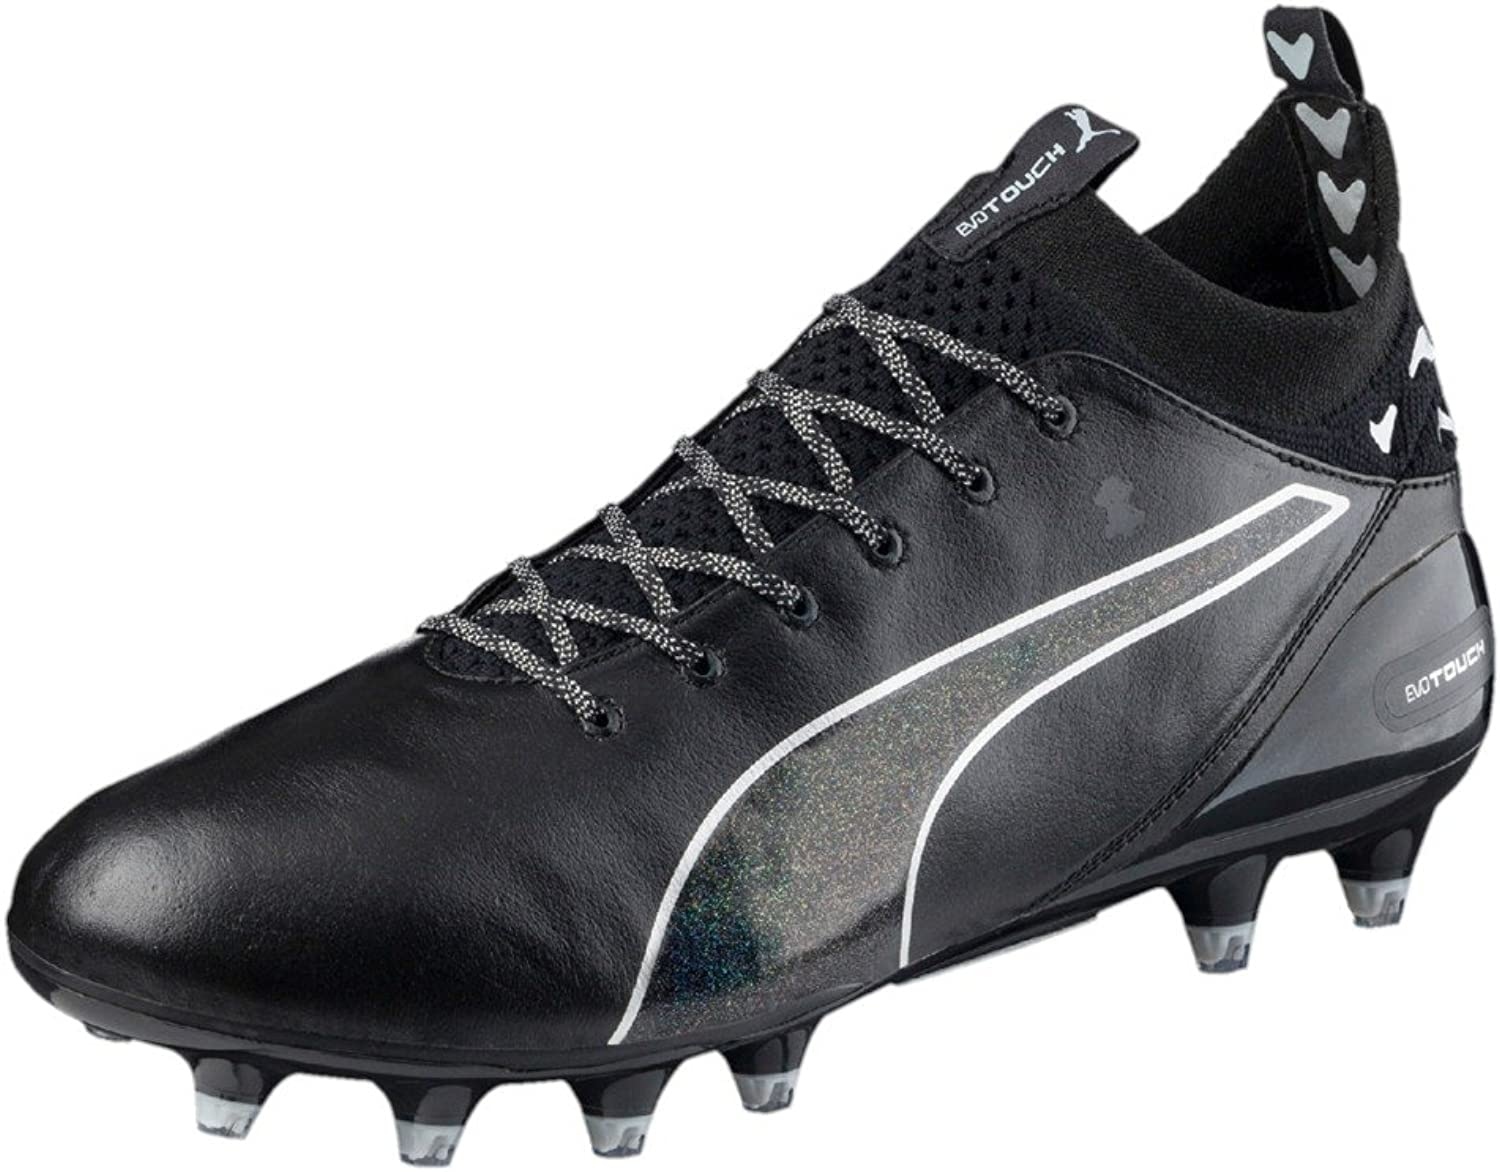 Evotouch Pro FG Football Boots - Black Black Silver